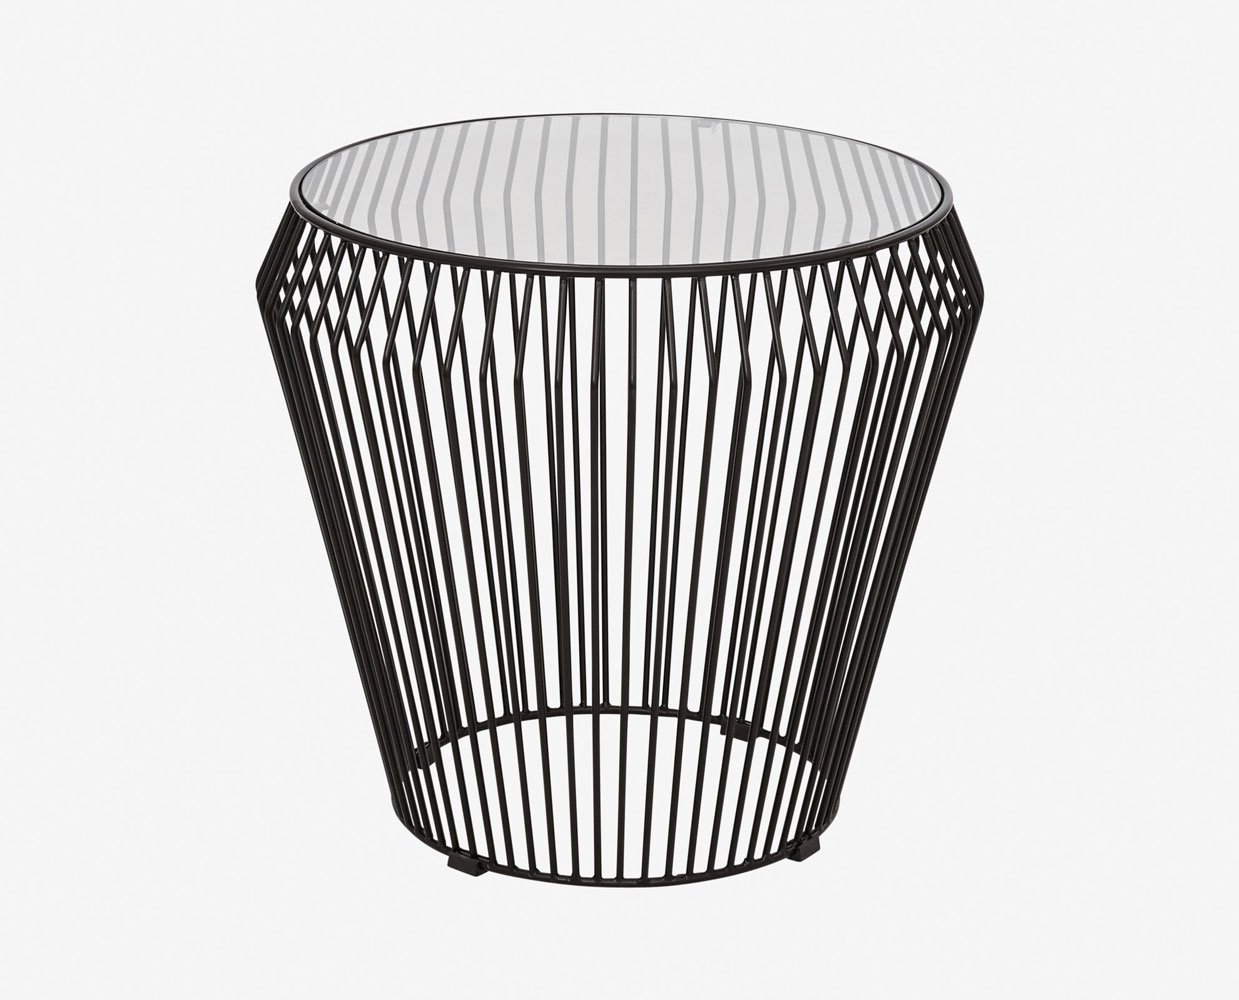 new accent tables scandis white drum table teegan end black nautical dining room lights wall furniture small triangle harrietta piece set shelving weber charcoal grill hallway